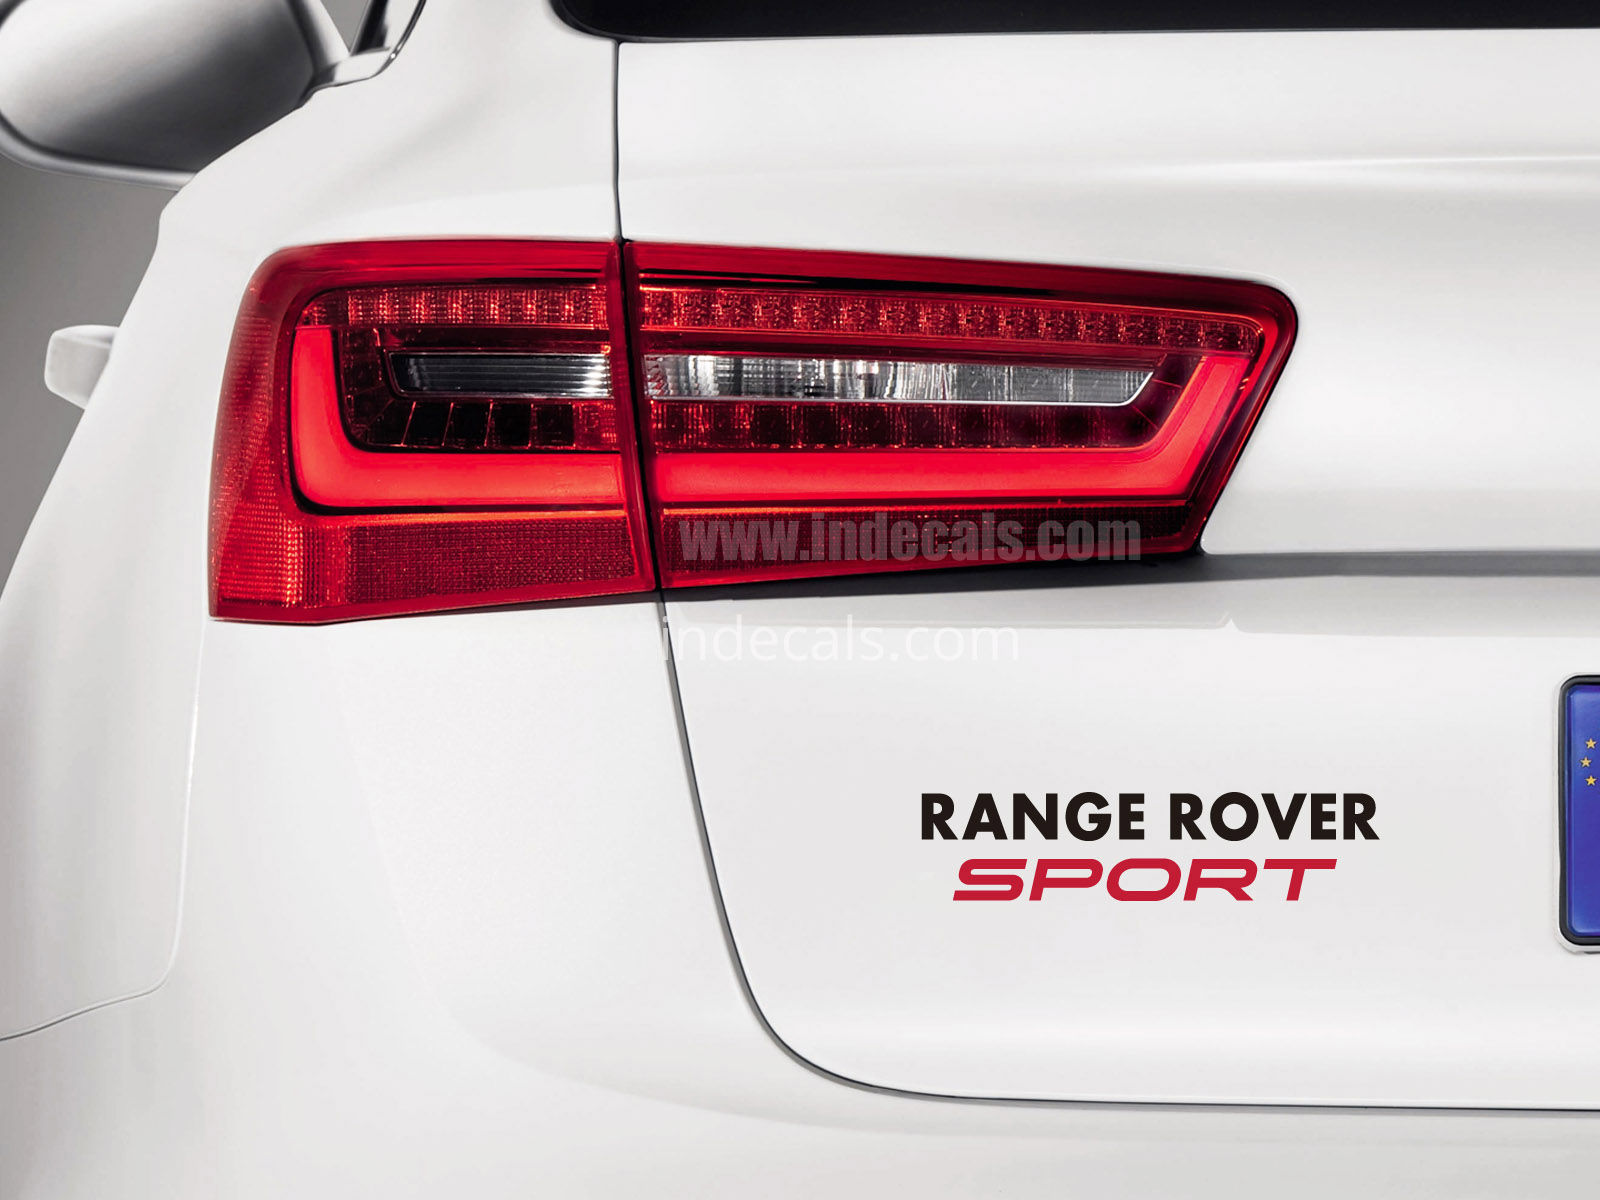 1 x Range Rover Sports Sticker for Trunk - Black & Red